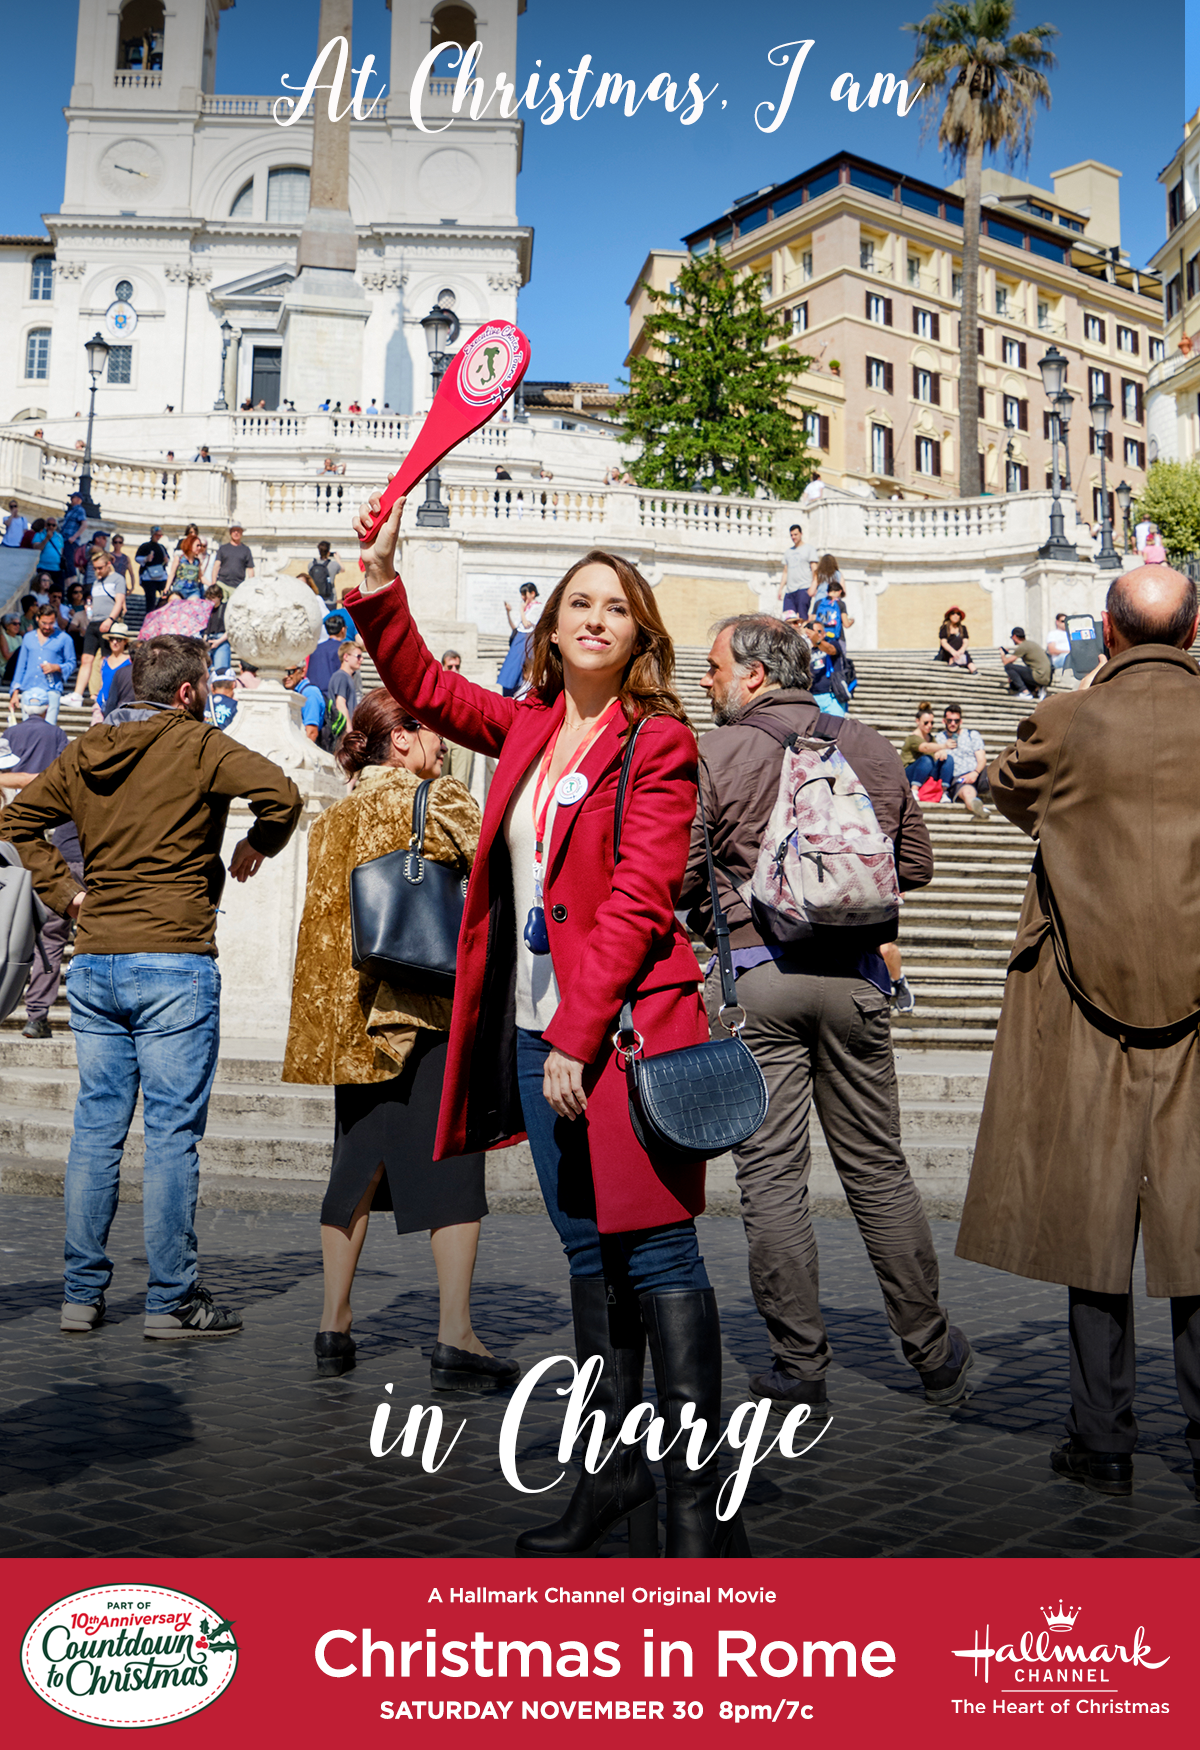 Rome Christmas Events 2020 Do you take charge like Amanda (Lacey Chabert) when friends and